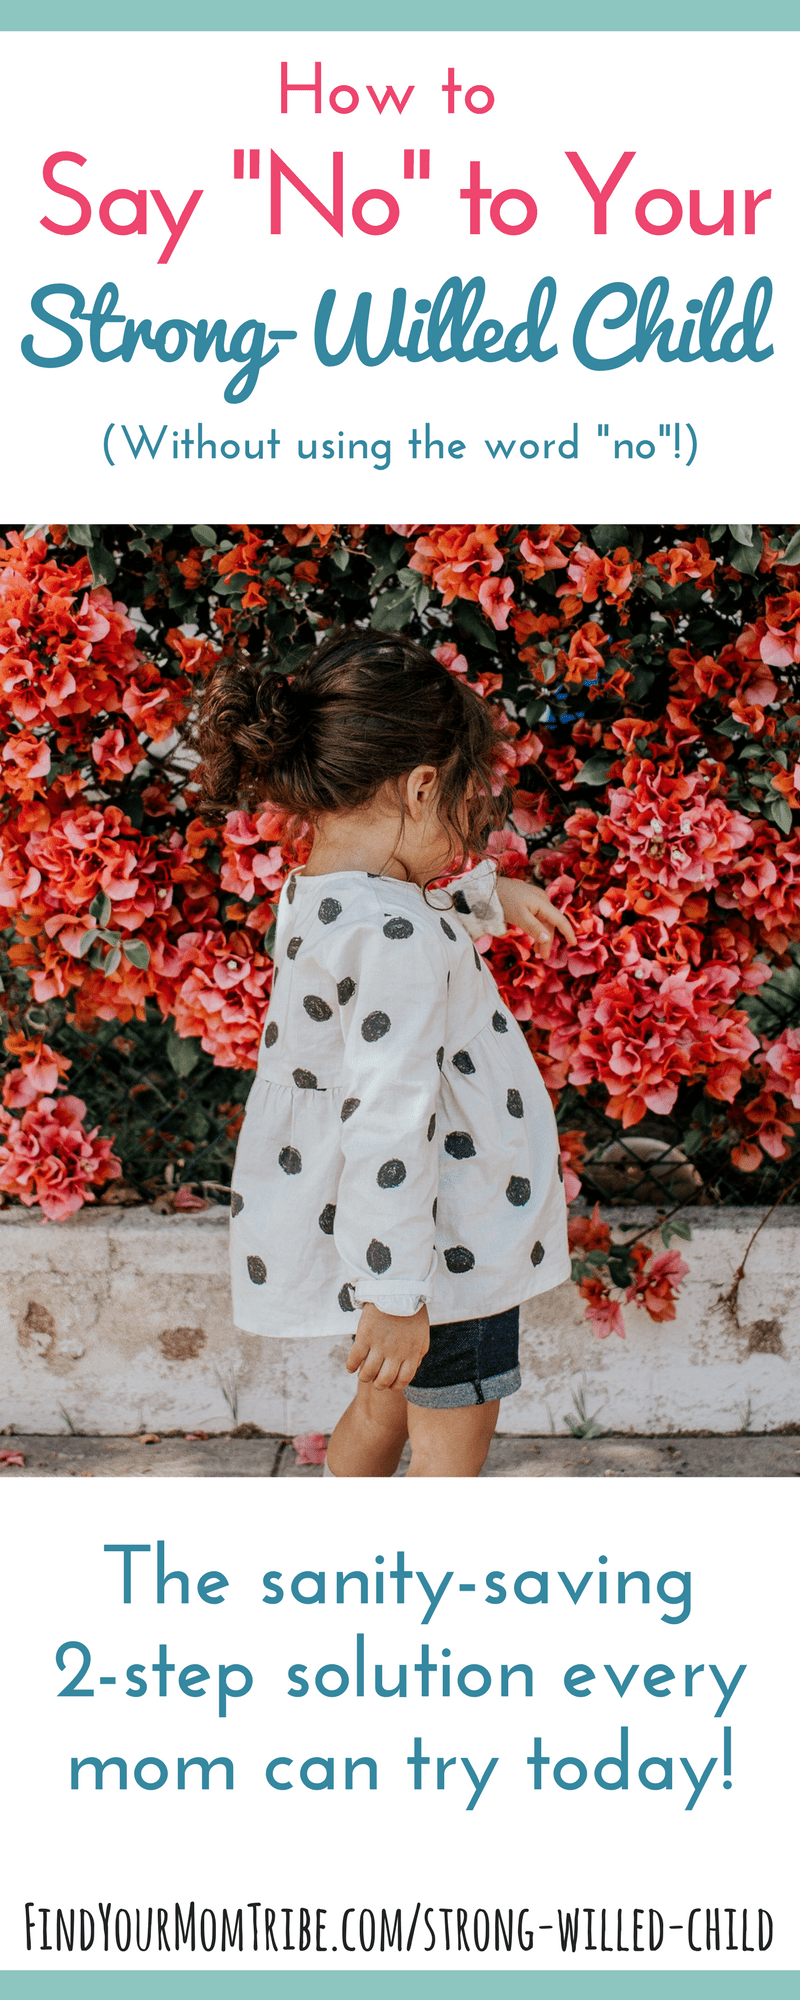 """Walking on eggshells to avoid triggering your strong-willed child? Does the word """"no"""" cause an epic meltdown? Here's an easy, 2-step solution for the spirited child! Read at: FindYourMomTribe.com/strong-willed-child"""